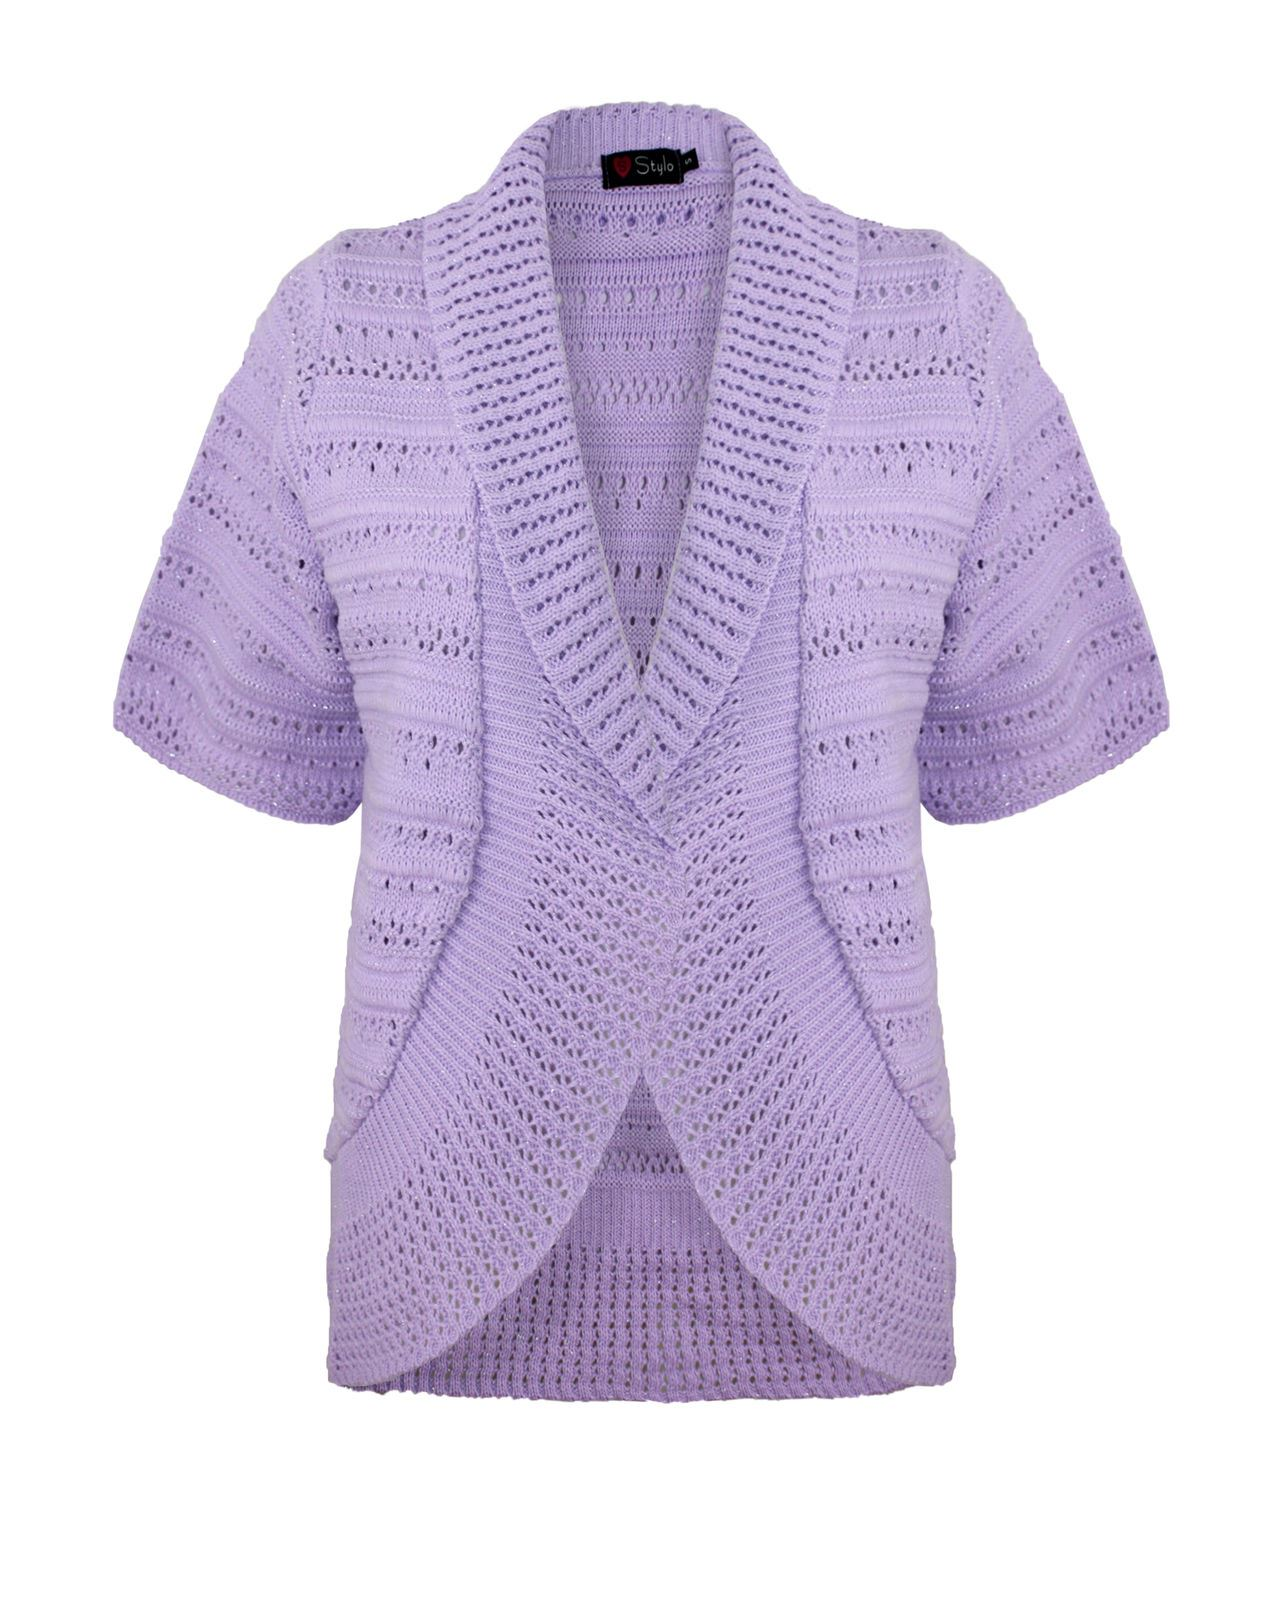 Knitting Pattern Ladies Short Sleeve Cardigan : Ladies Womens Knitted Blazer Shrug Short Sleeves Open front Cardigan Top Jump...